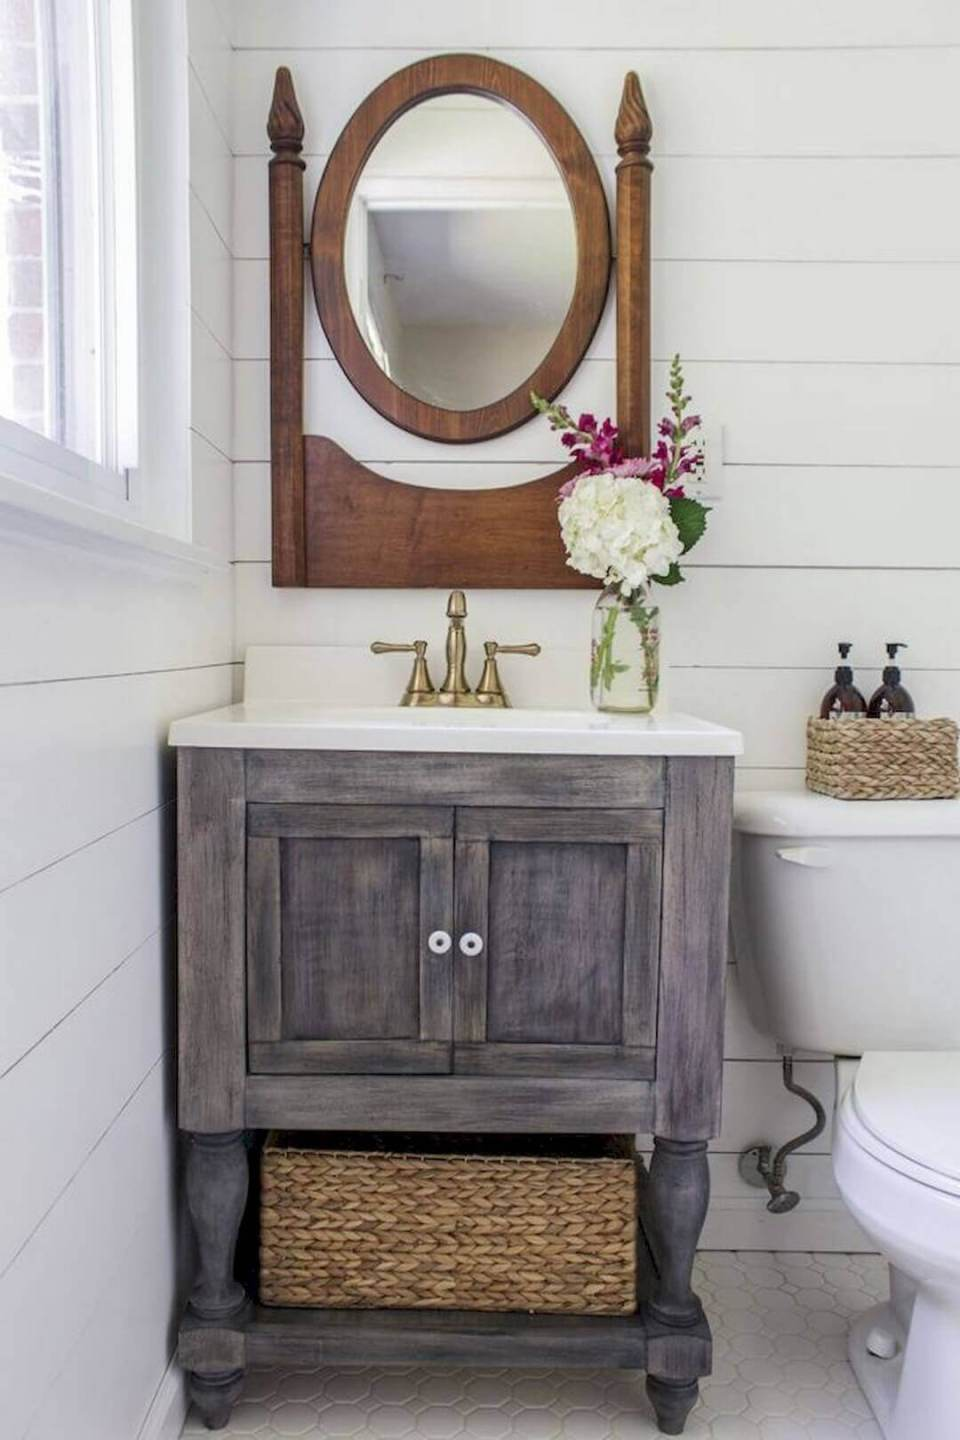 Small and Simple Rustic Gray Wood